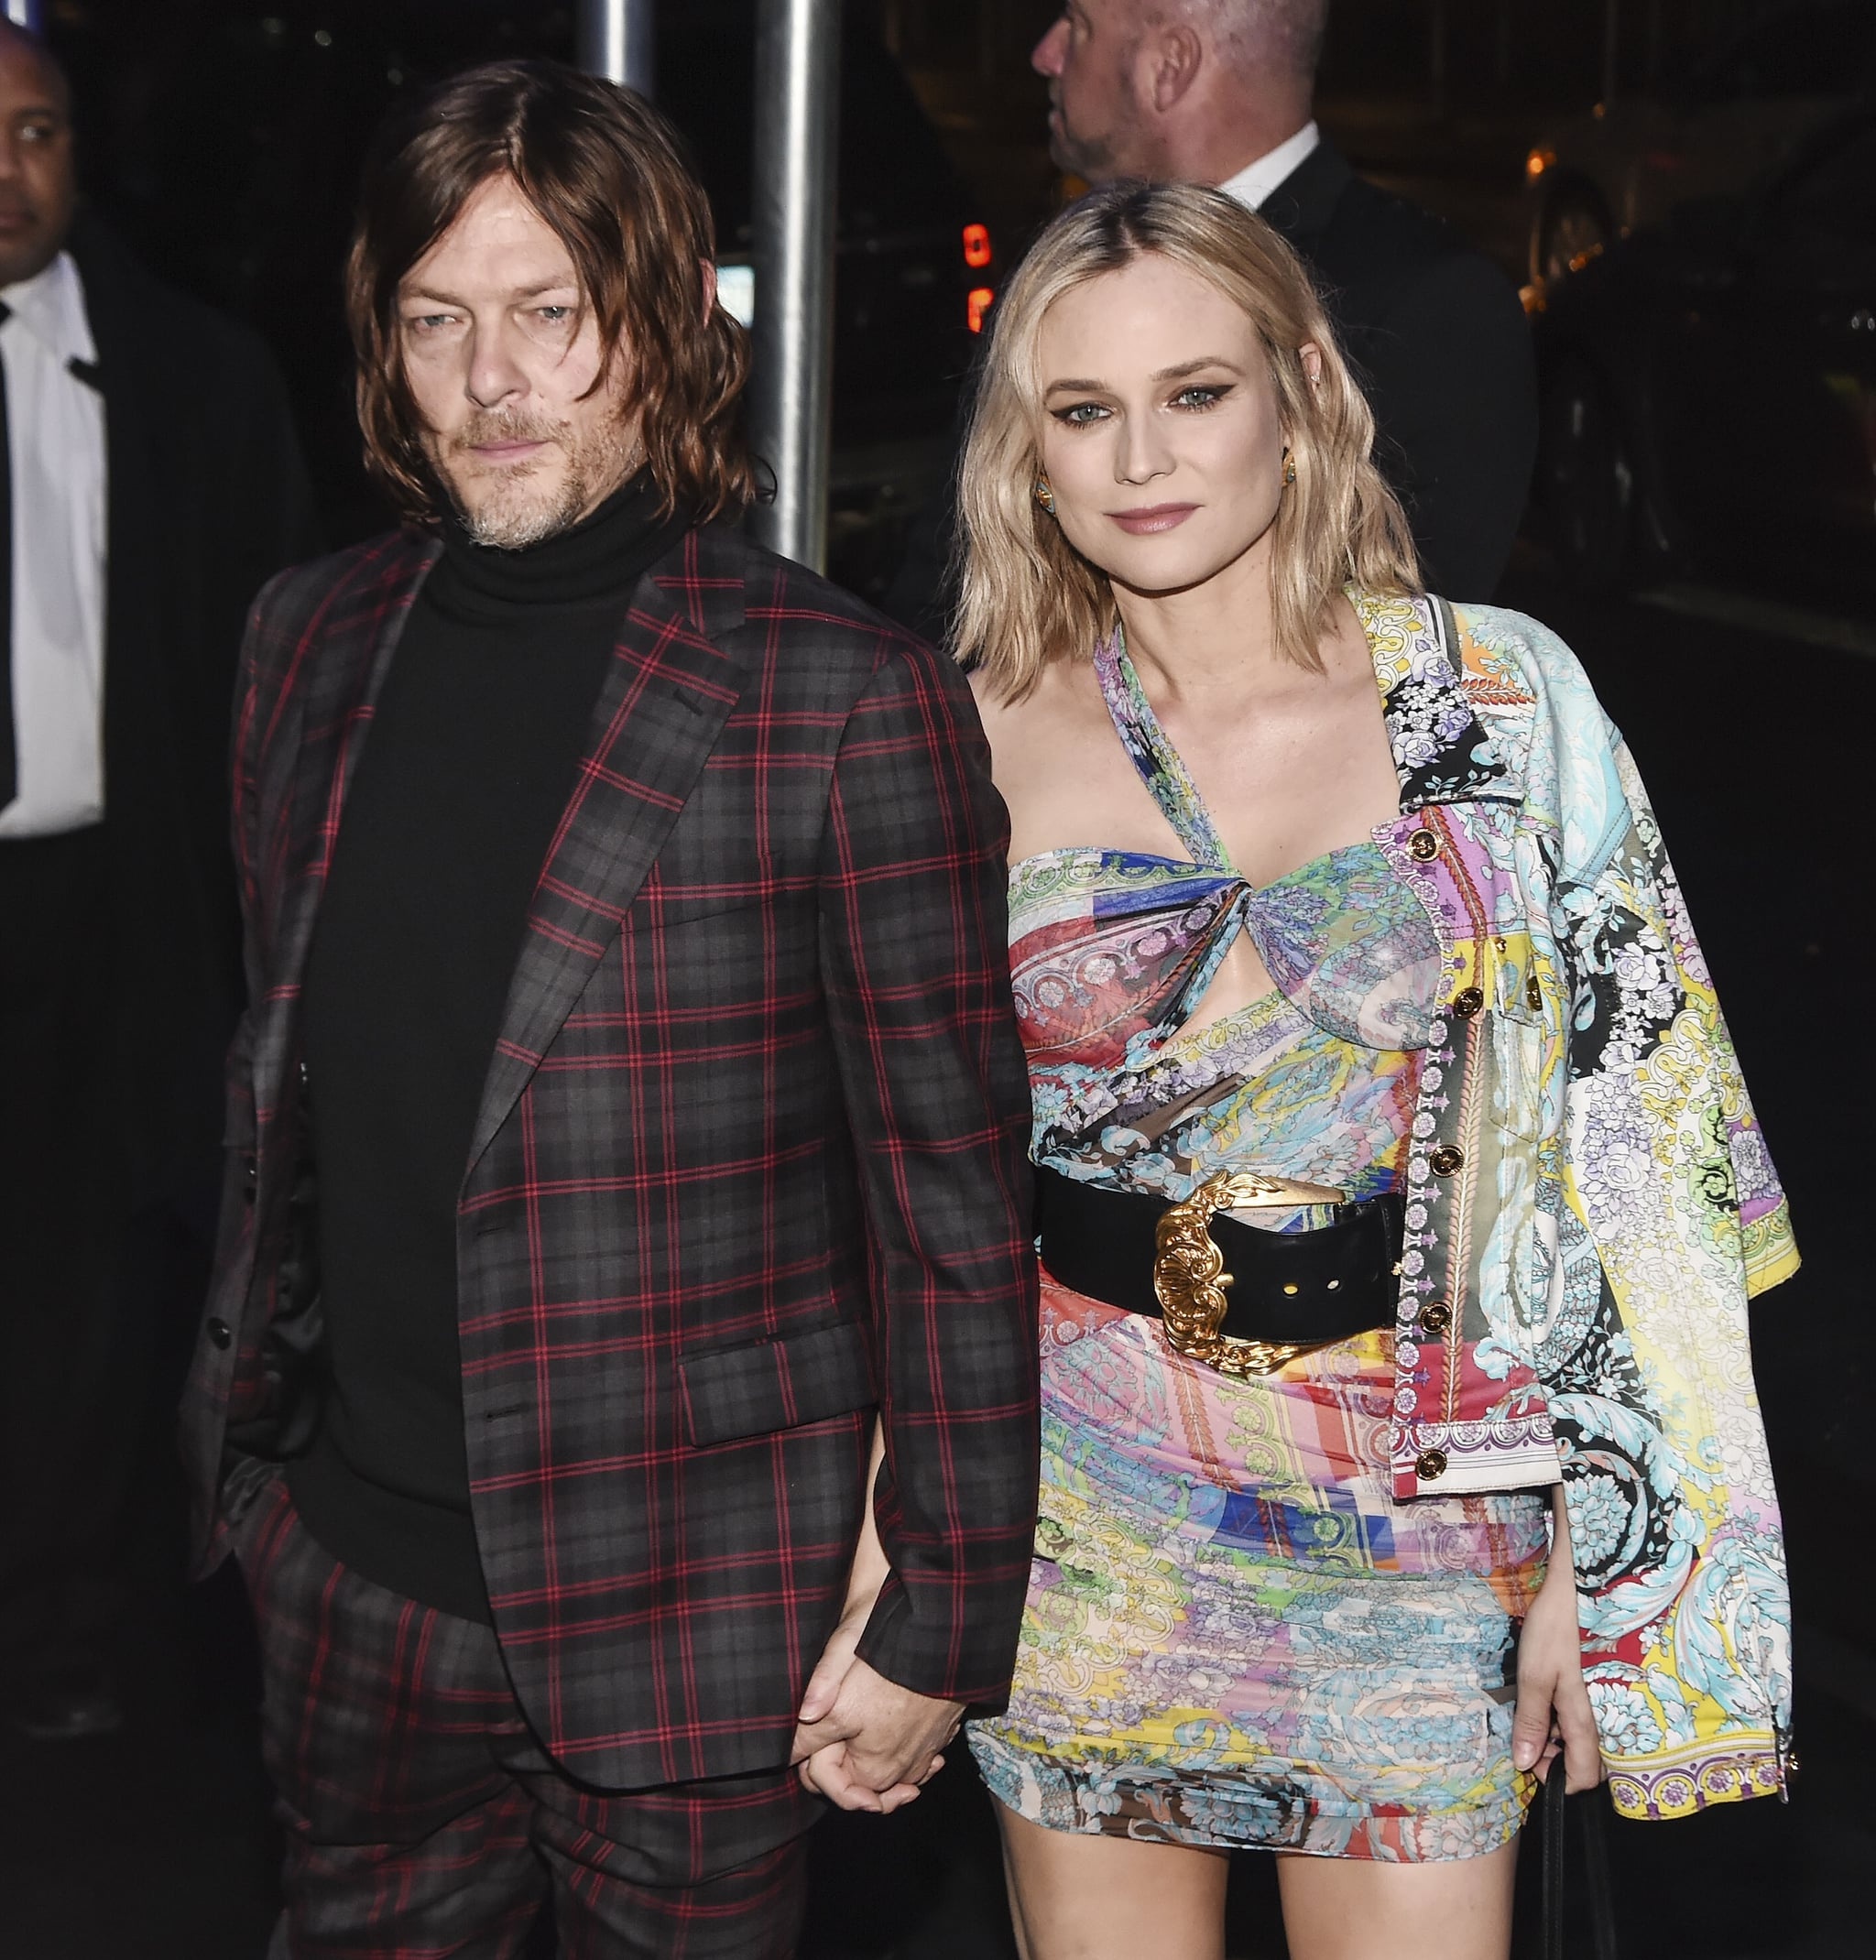 NEW YORK, NY - DECEMBER 02:  Norman Reedus and Diane Kruger are seen outside the Versace Pre-Fall 2019 Collection on December 2, 2018 in New York City.  (Photo by Daniel Zuchnik/Getty Images)